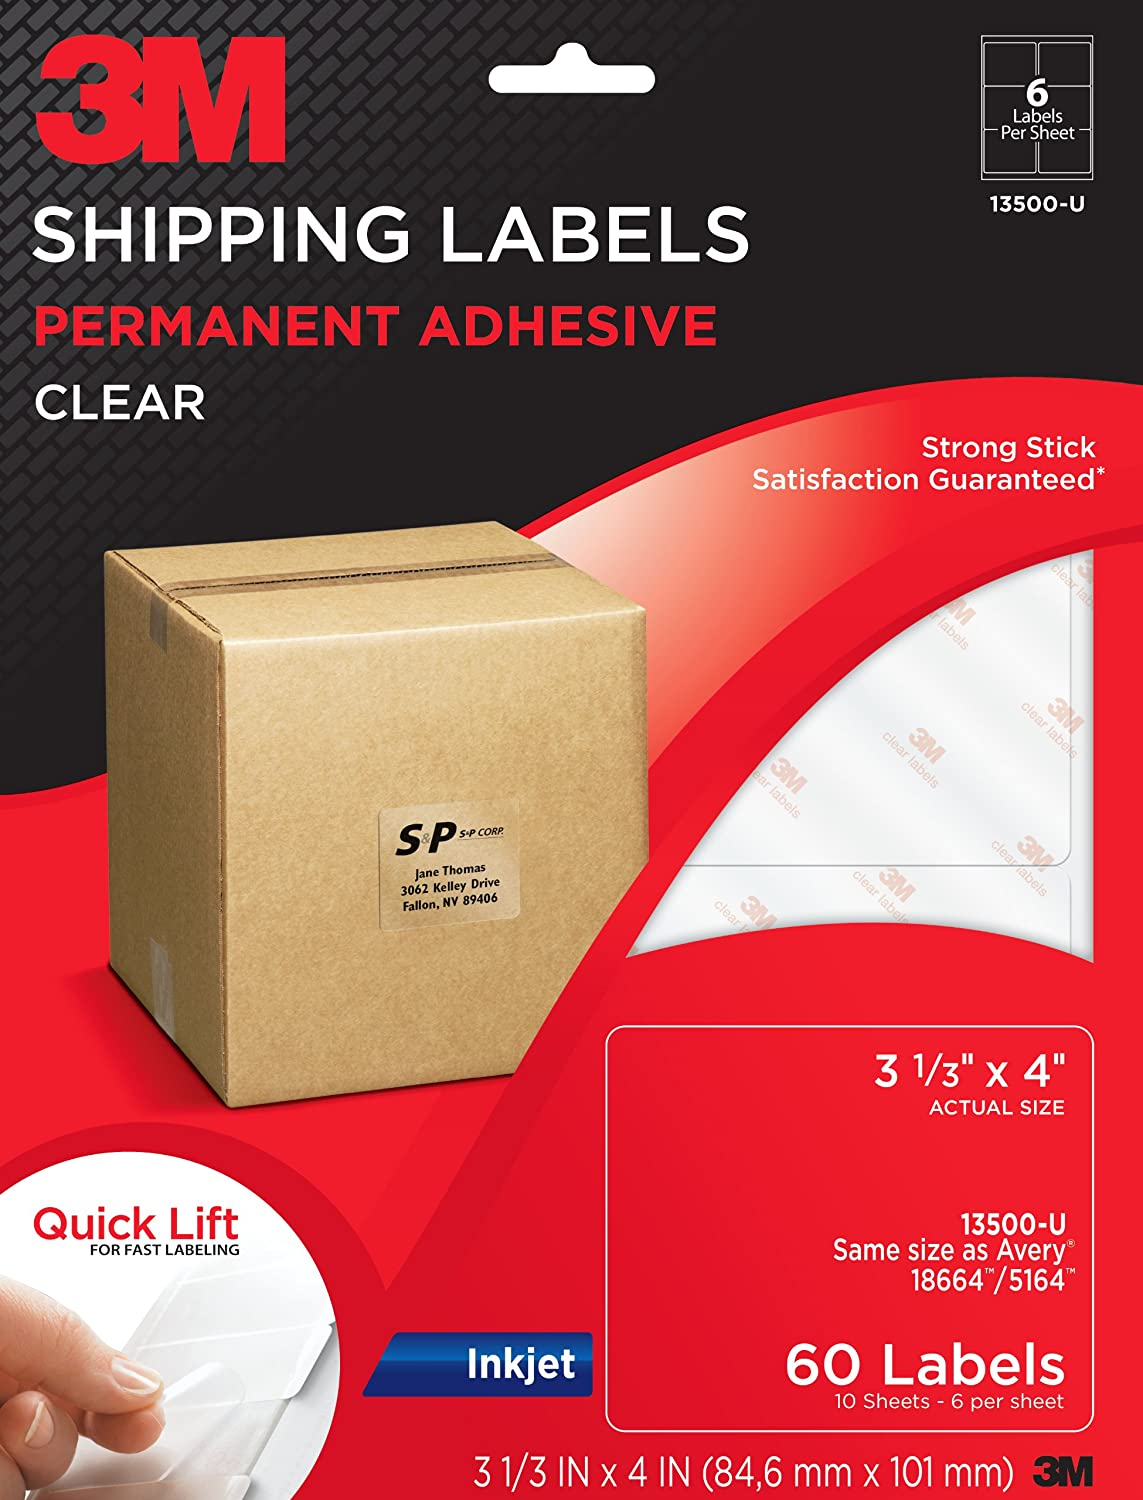 Amazon.com : 3M Shipping Labels for Inkjet Printers, Clear, 3 1/3 x ...